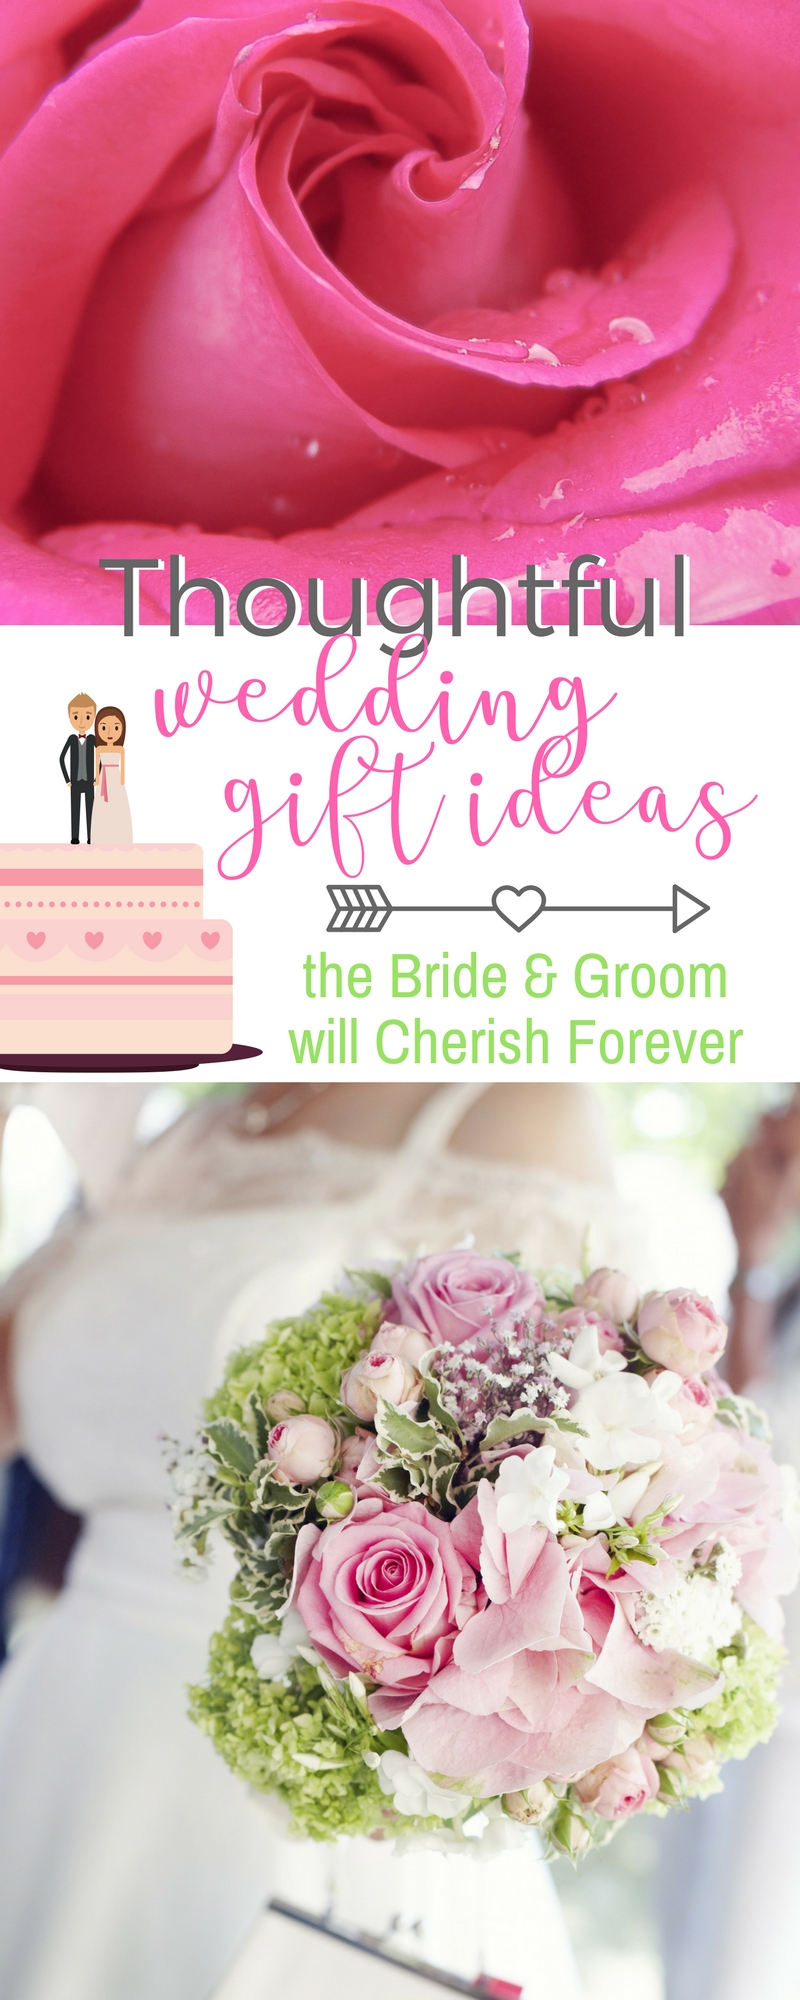 Unique Wedding Gift Ideas the Bride and Groom Will Cherish Forever!